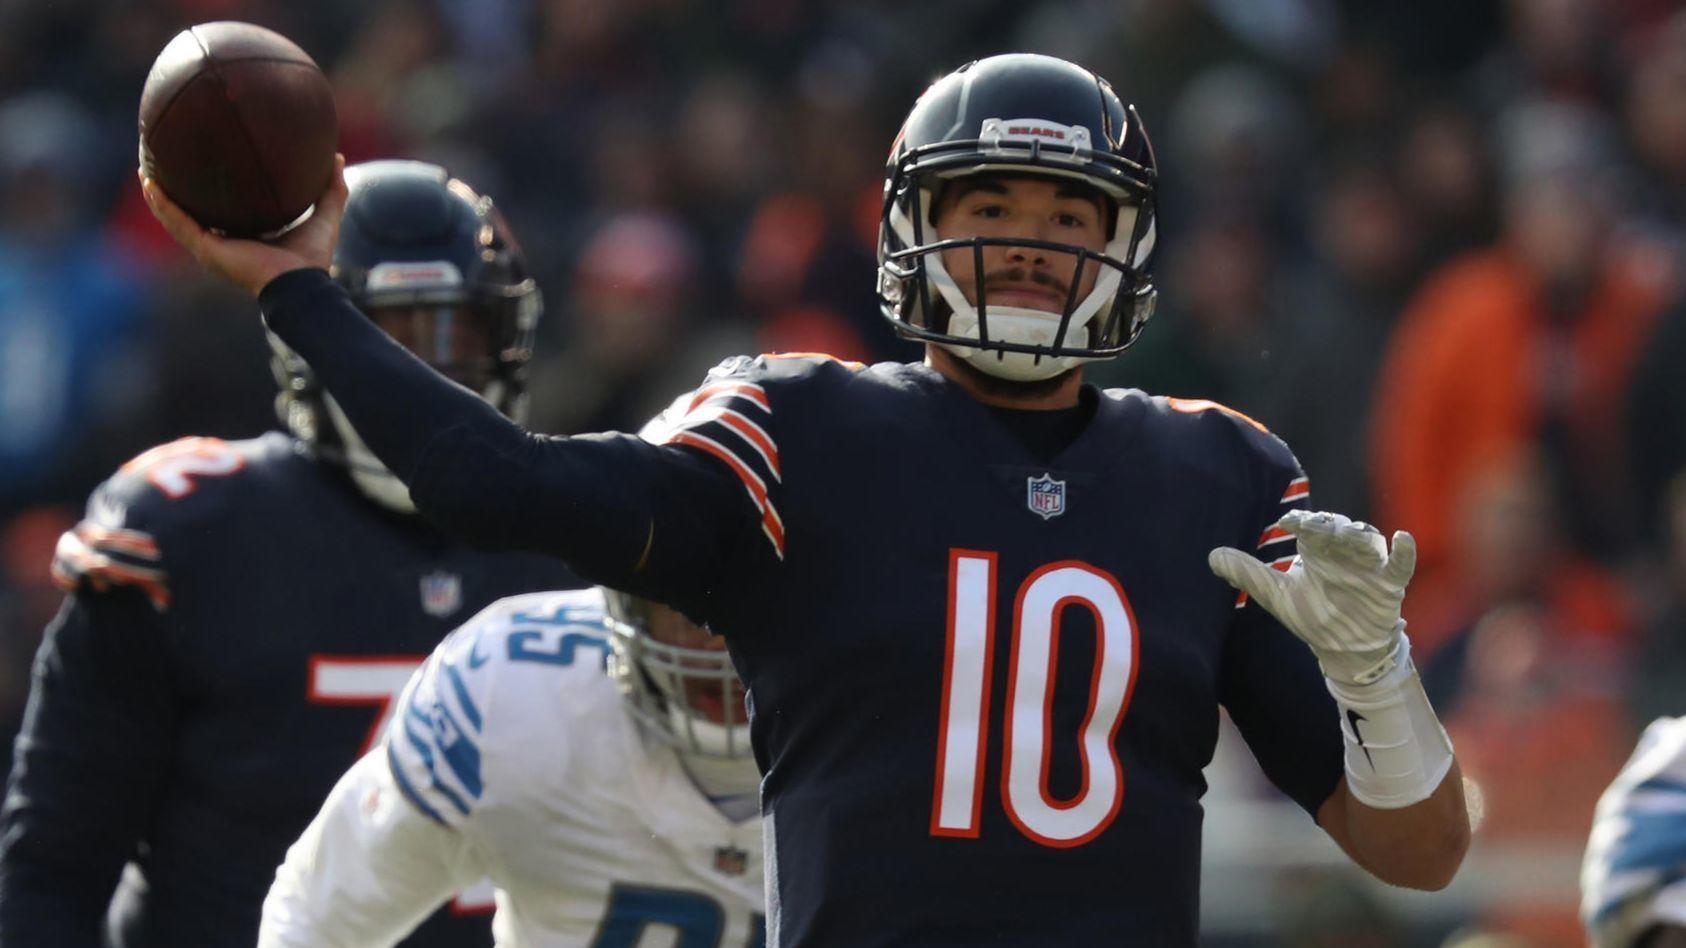 Ct-spt-bears-lions-observations-mitch-trubisky-khalil-mack-20181113